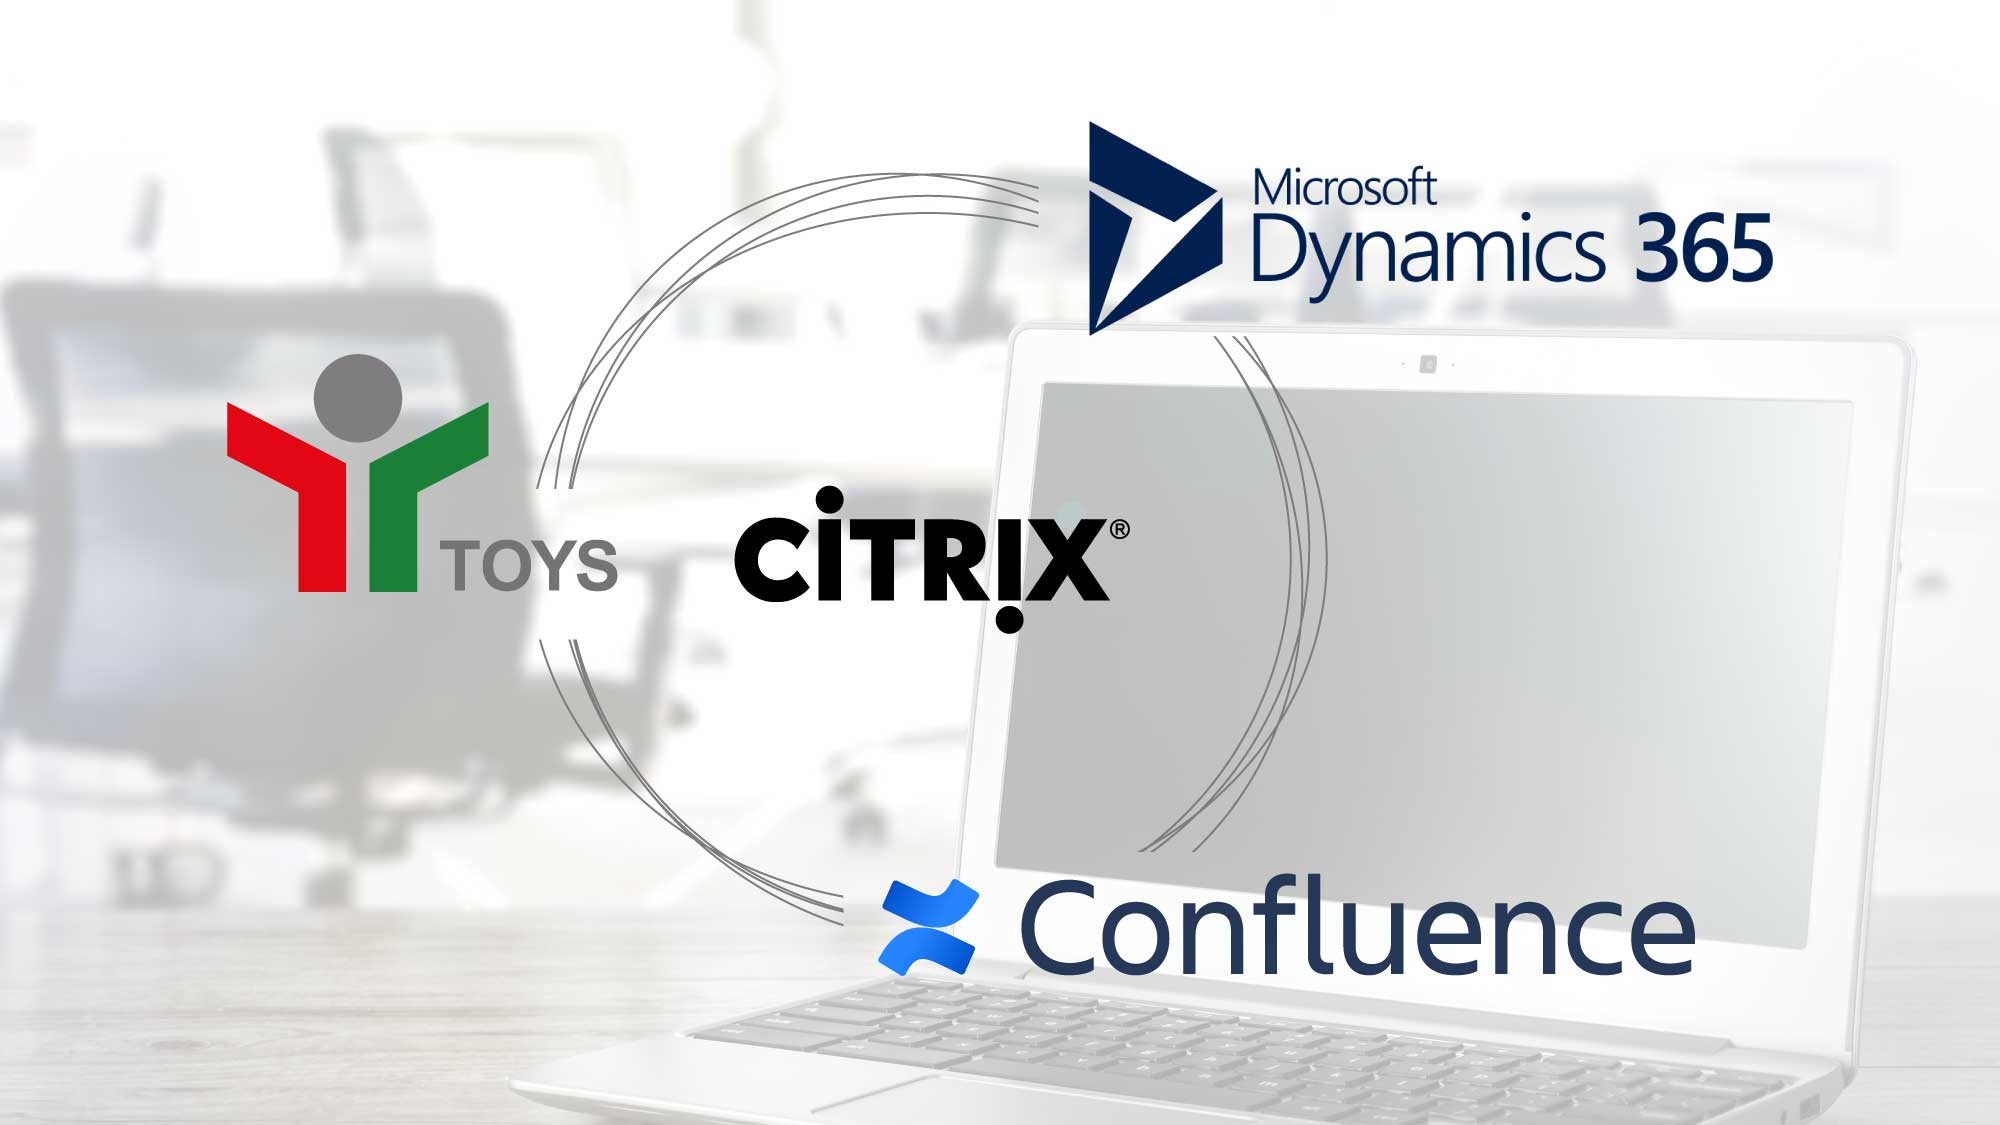 Schema with logos of K-net IT Toys, Microsoft Dynamics, Citrix and Confluence showing the system of process in K-net